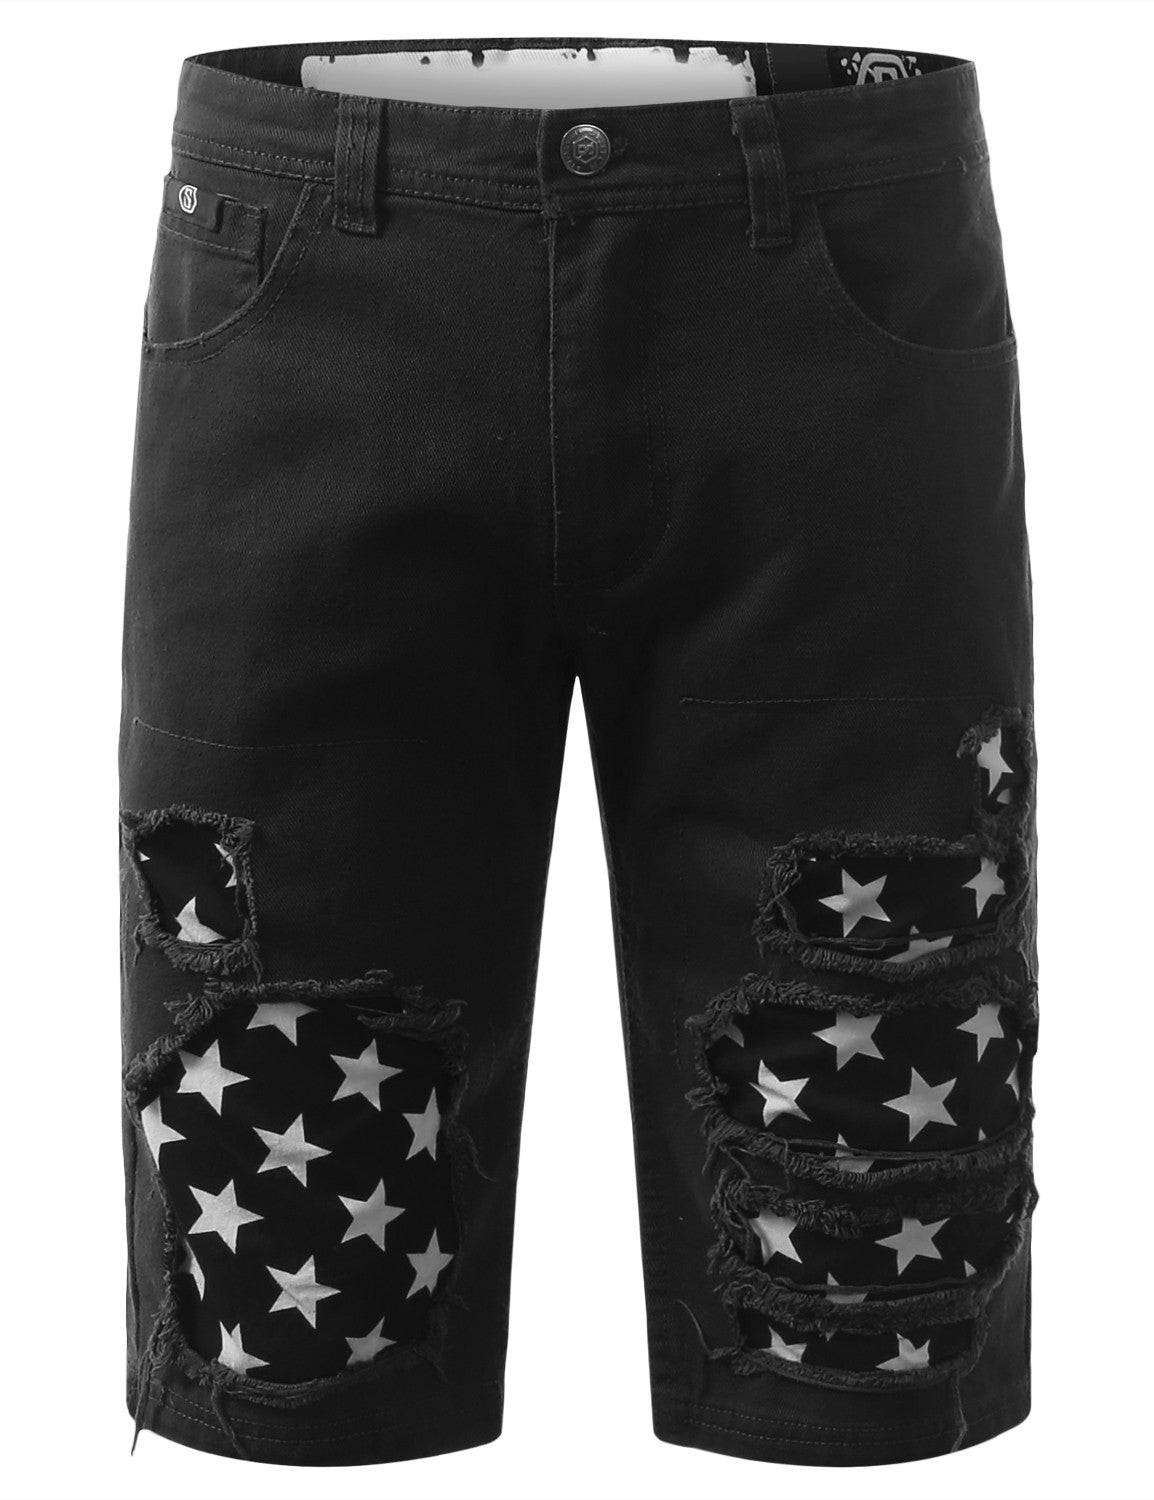 Rip Star Patch Denim Shorts - URBANCREWS - 5